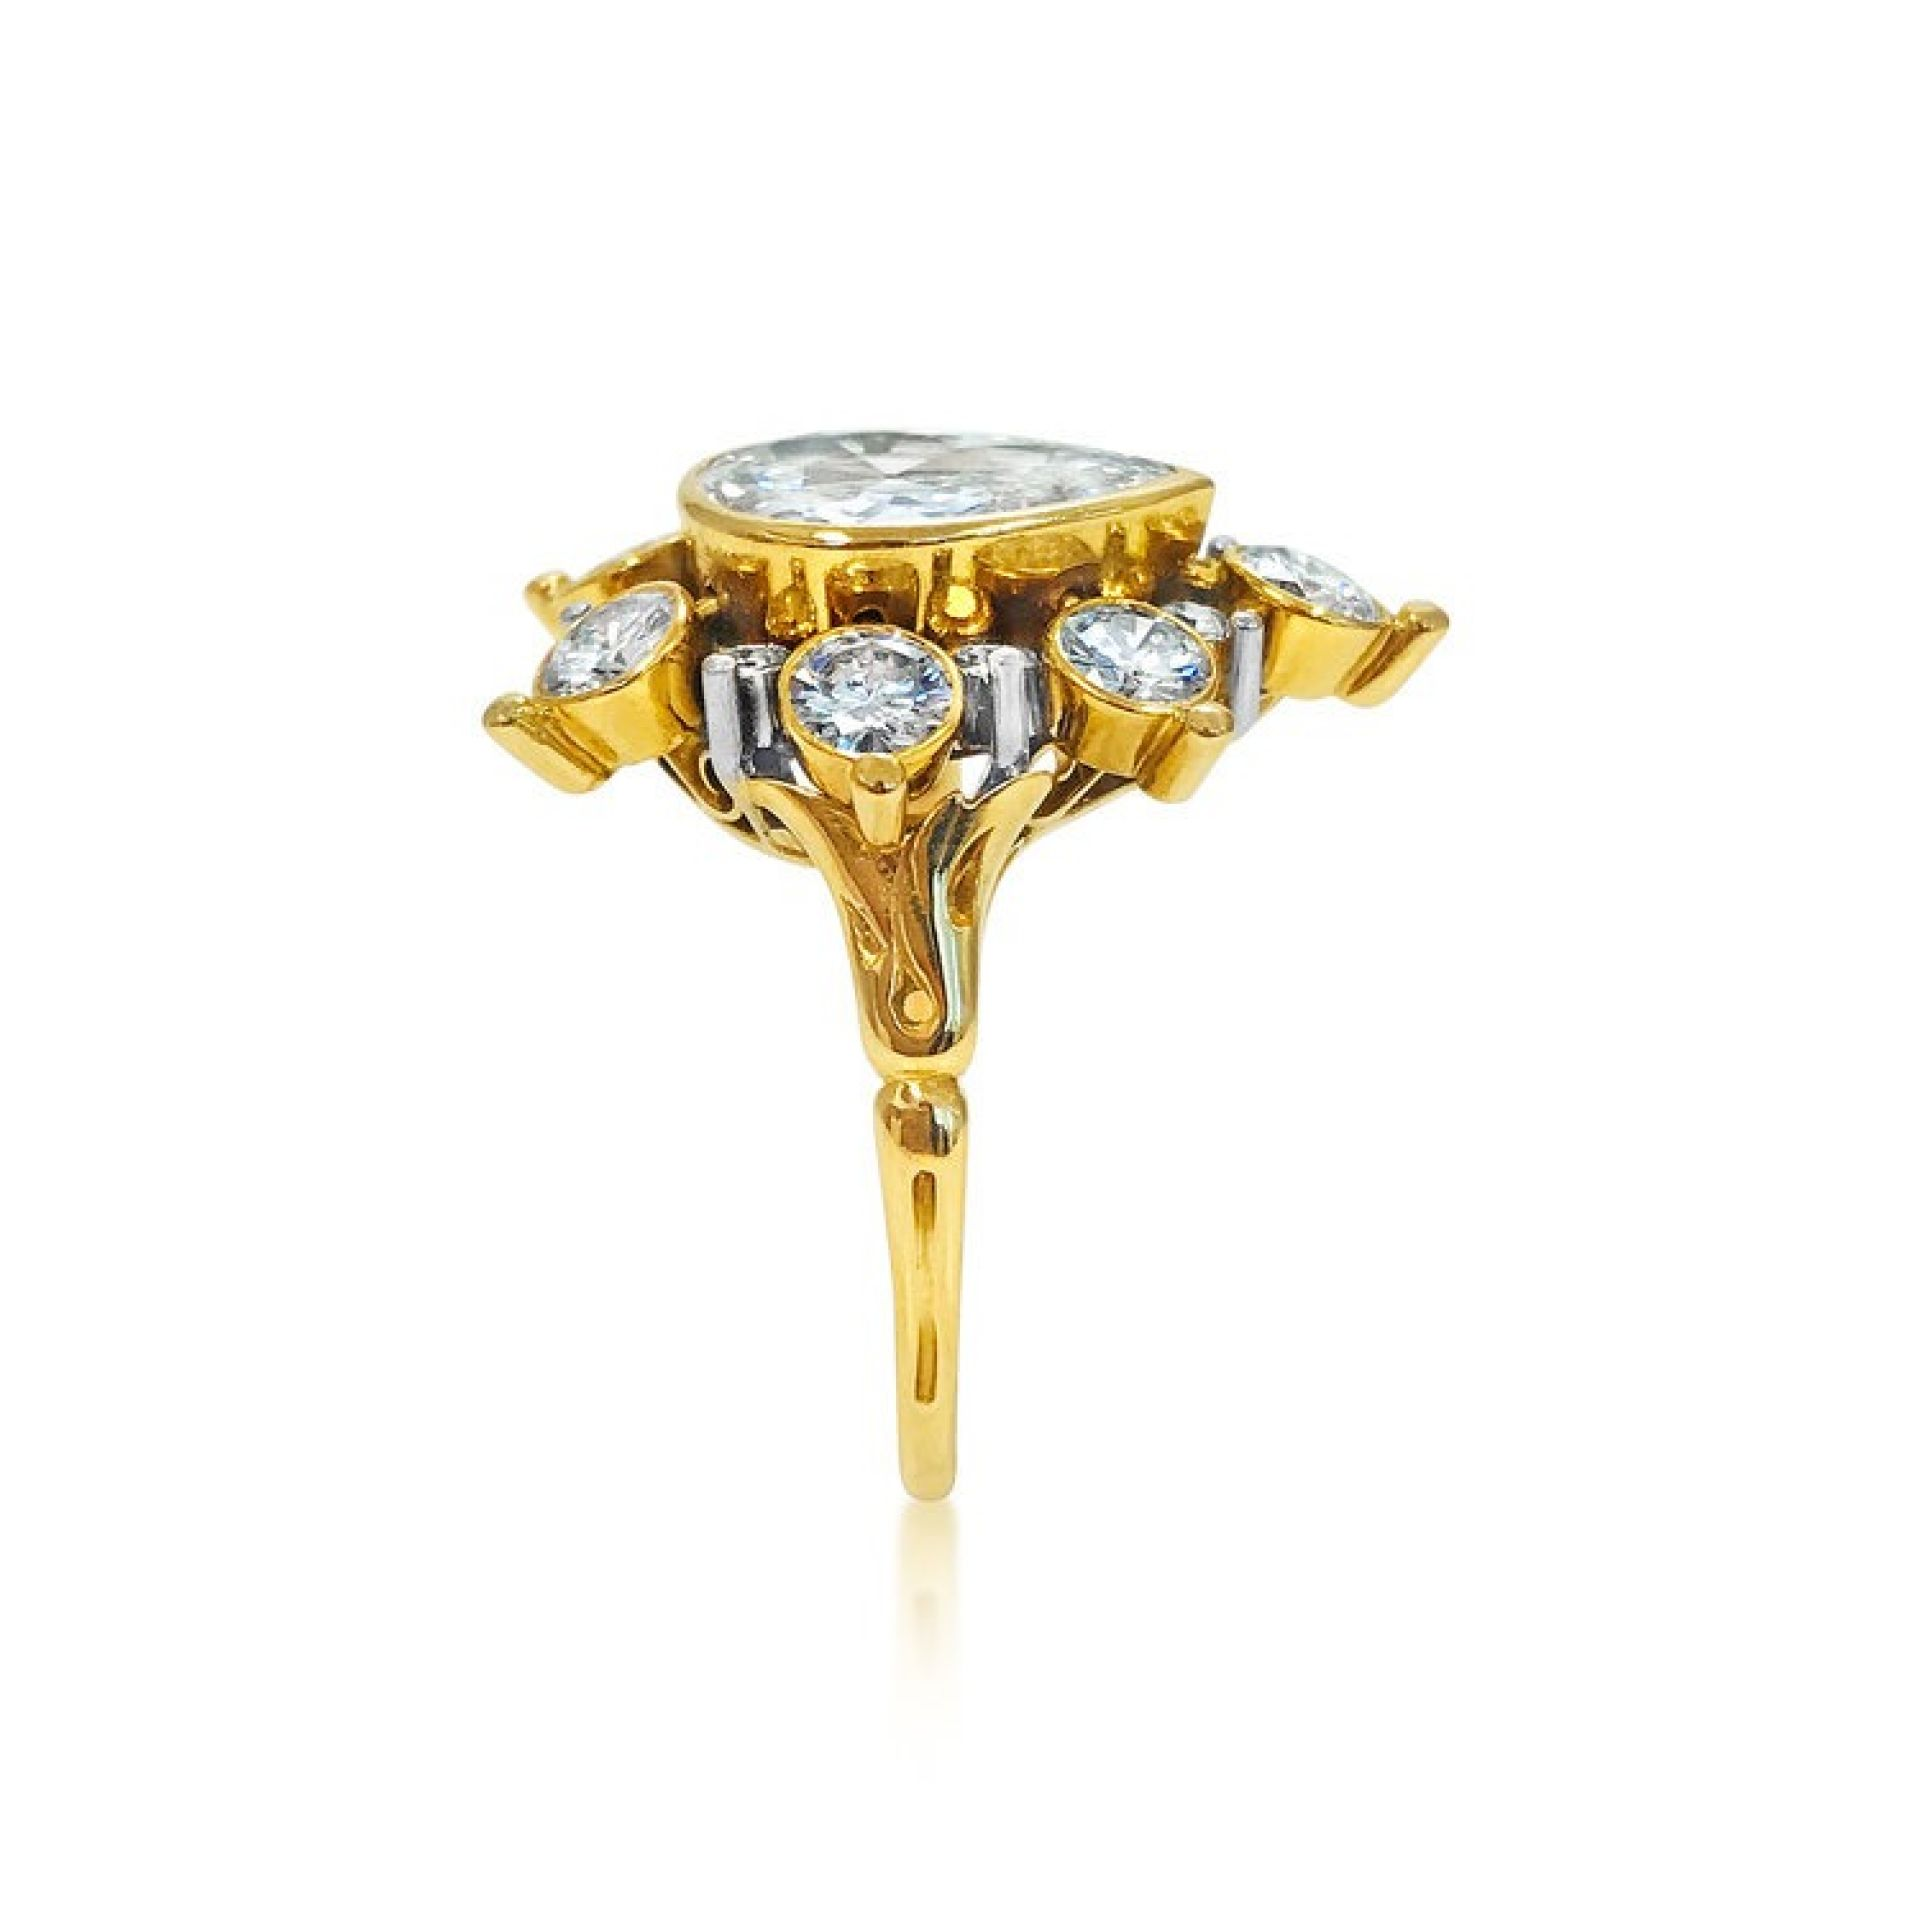 "AN 18K GOLD AND ""PAMPILLE"" DIAMOND RING, BY RENE BOIVIN."